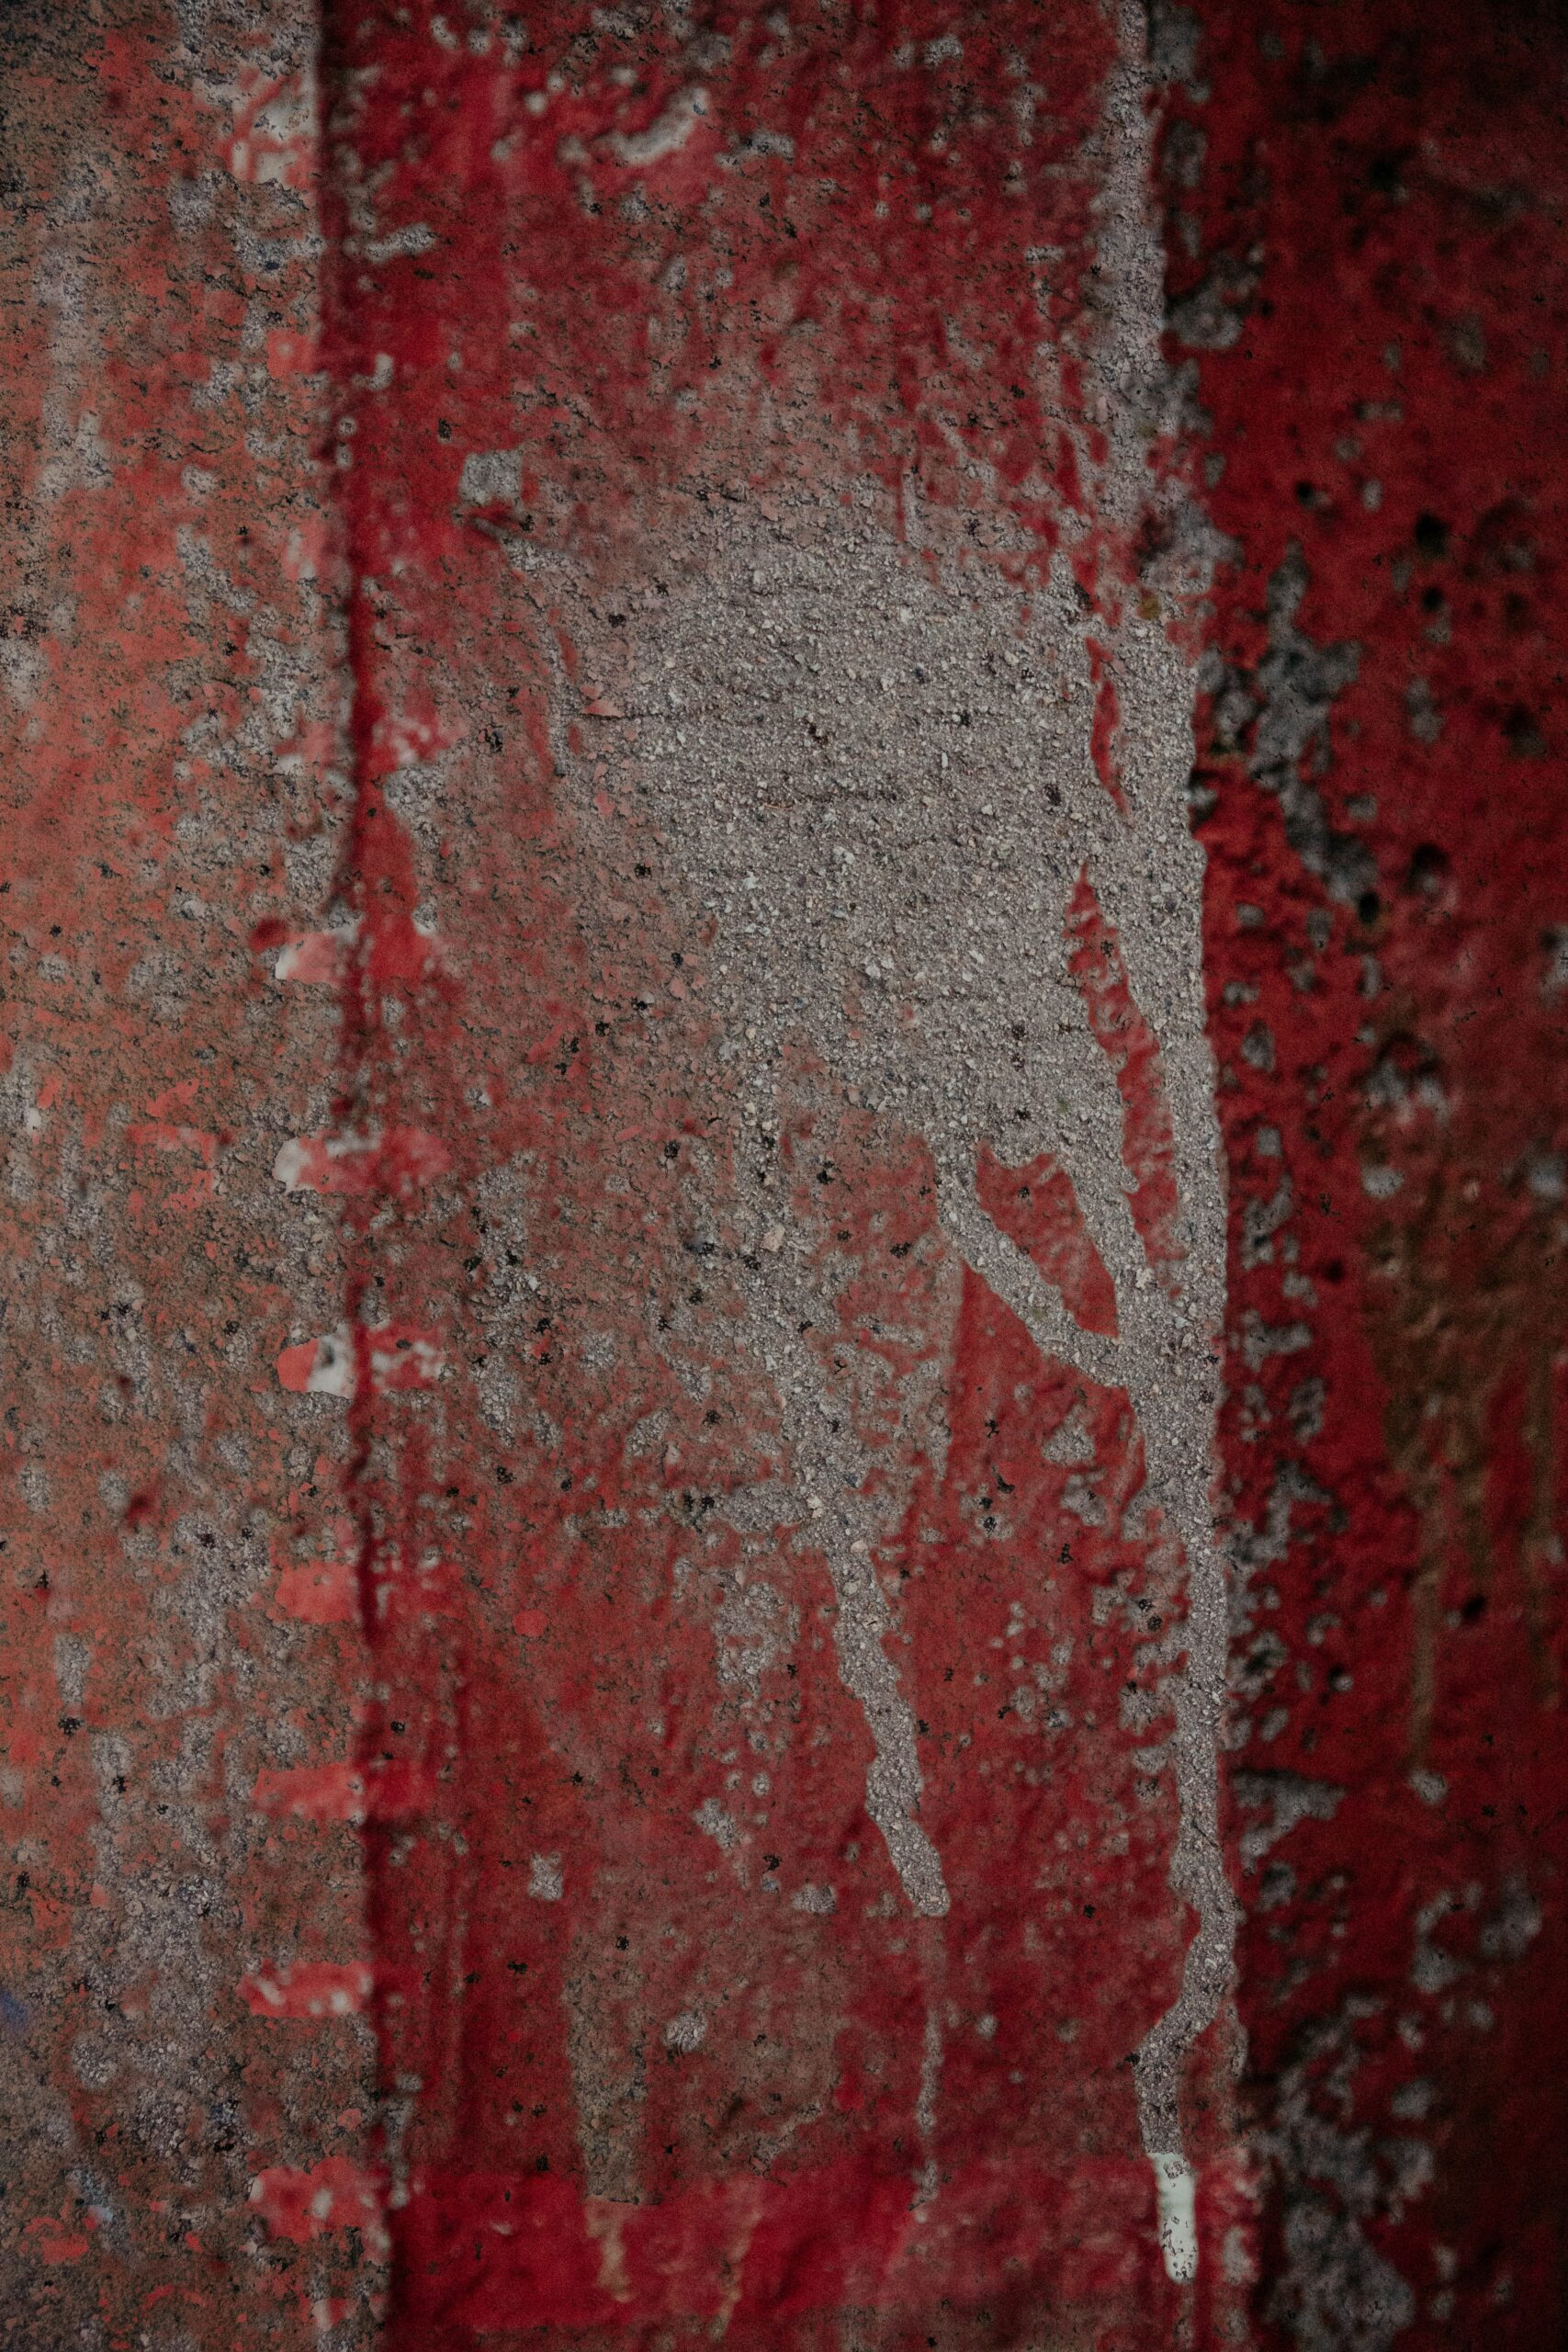 abstract image of rust red paint on concrete